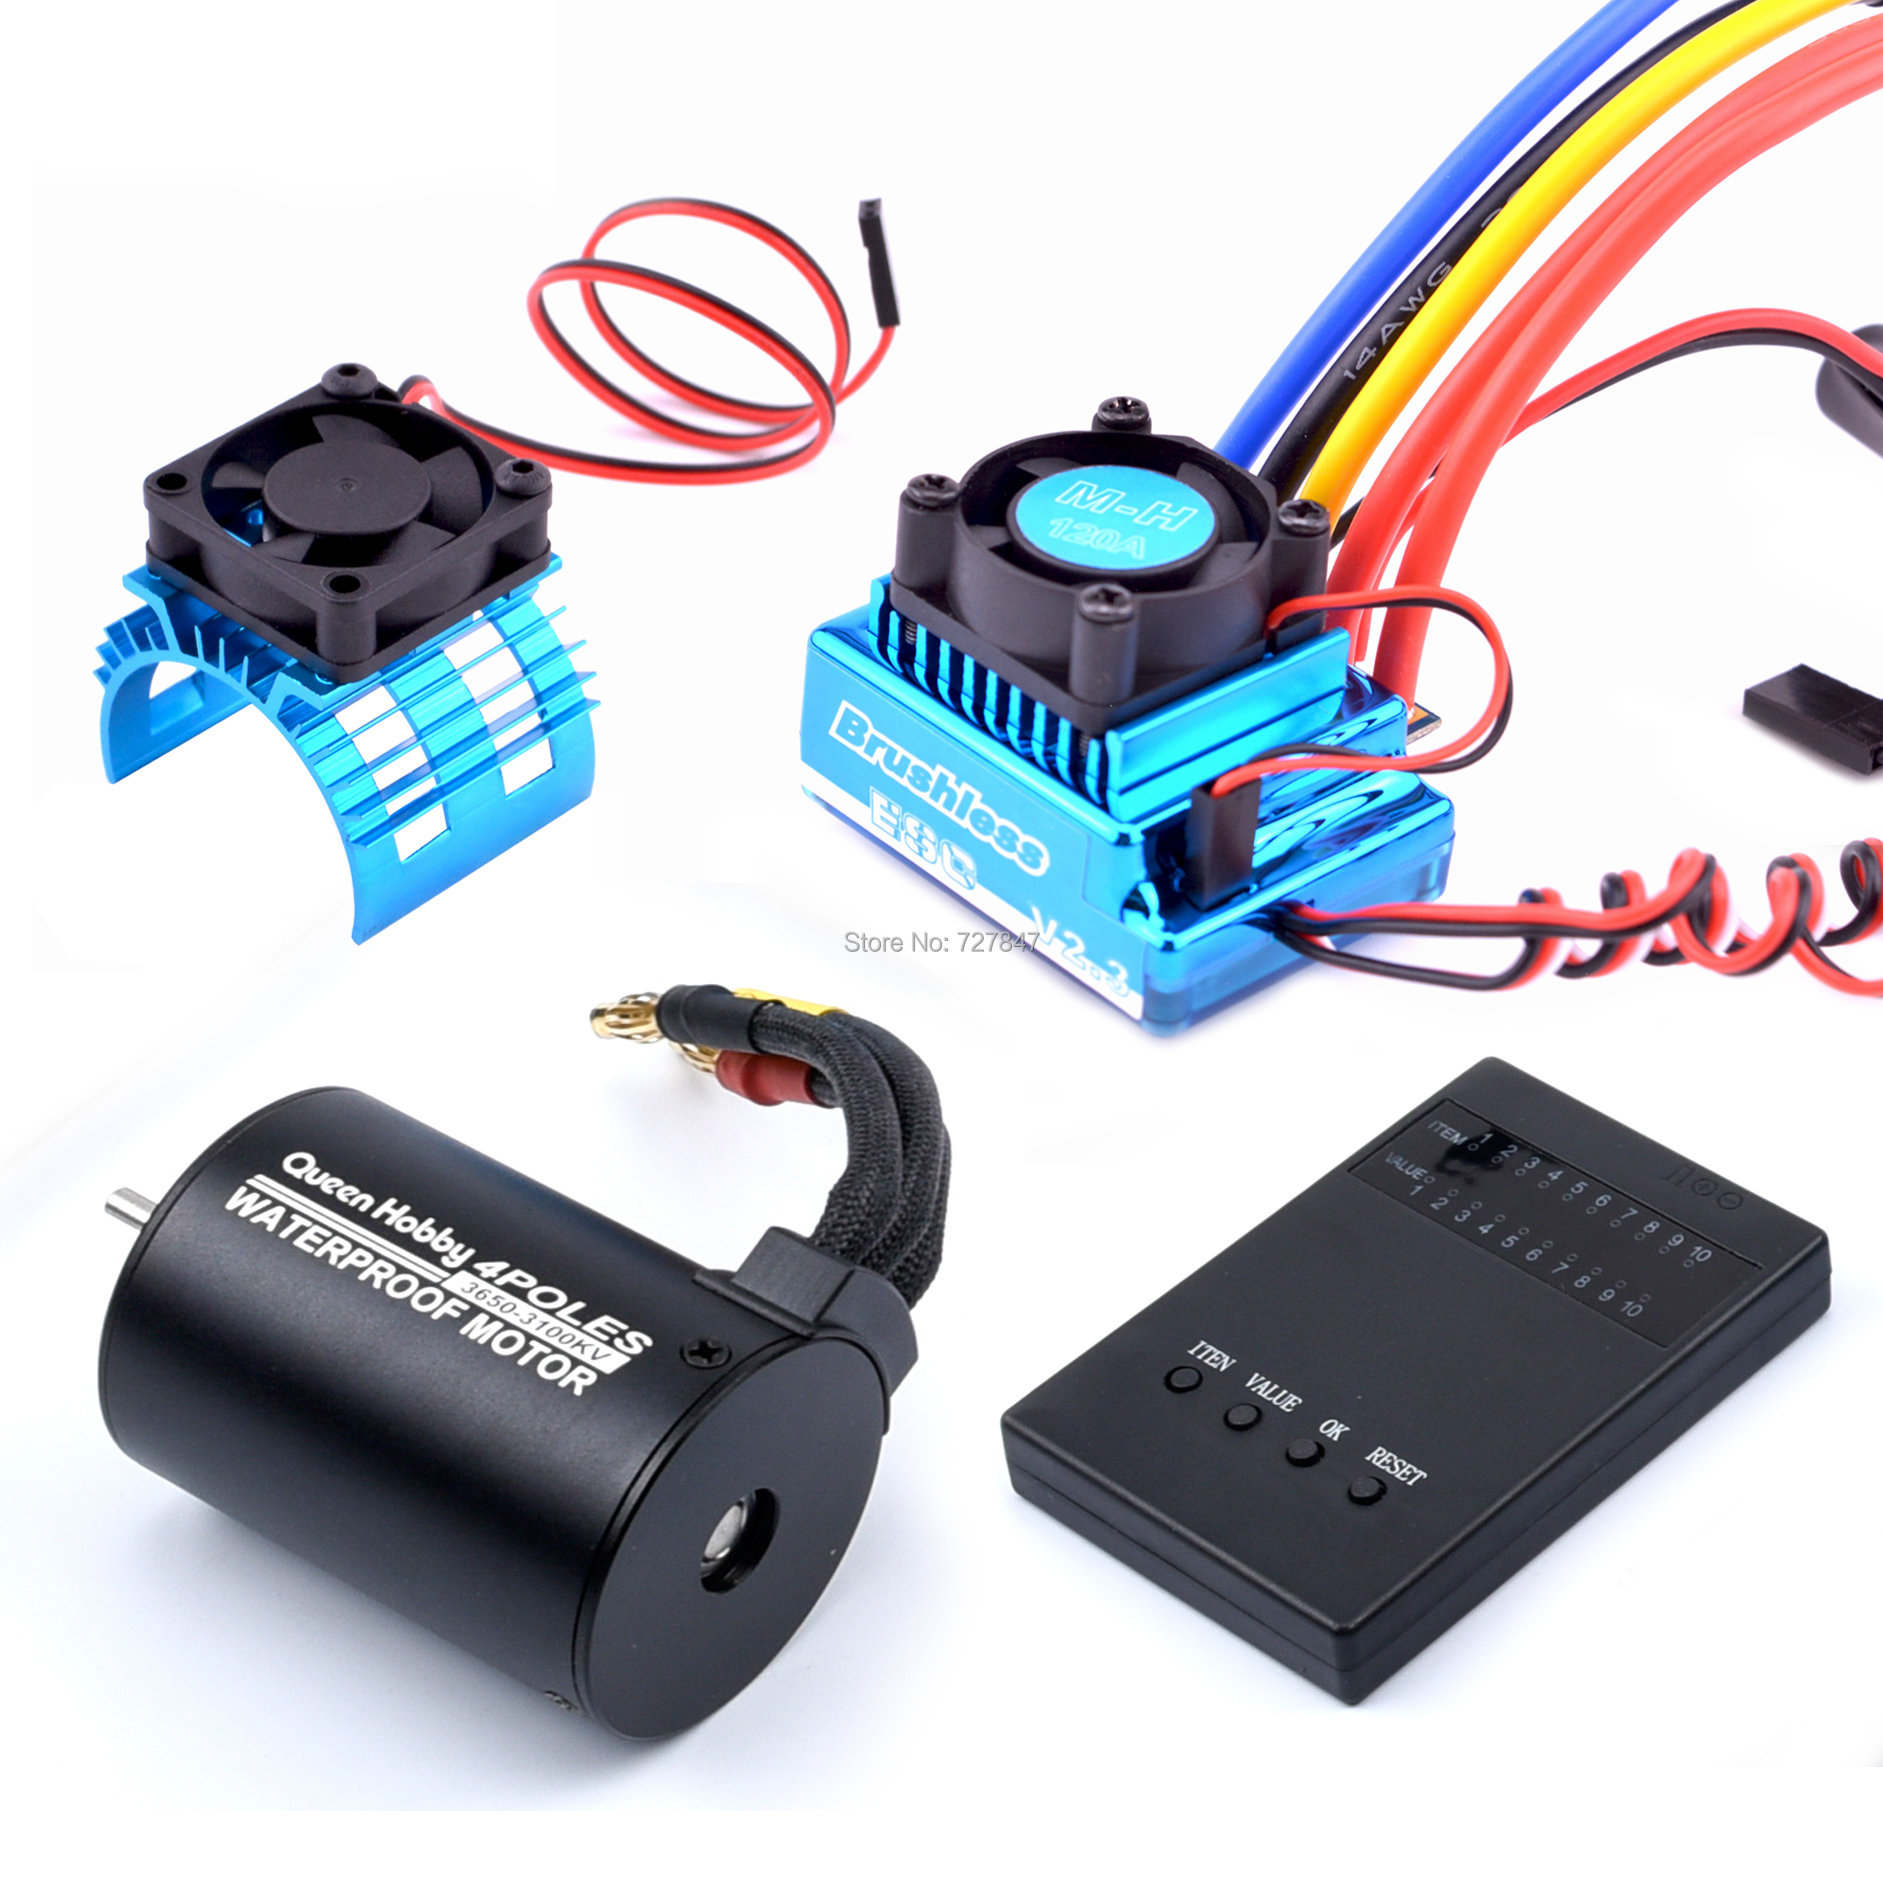 3650 3100KV <font><b>Brushless</b></font> <font><b>Motor</b></font> & 45A 60A 80A 120A <font><b>Brushless</b></font> ESC with Program Car Combo for 1:10 <font><b>RC</b></font> Car <font><b>RC</b></font> Boat Part image